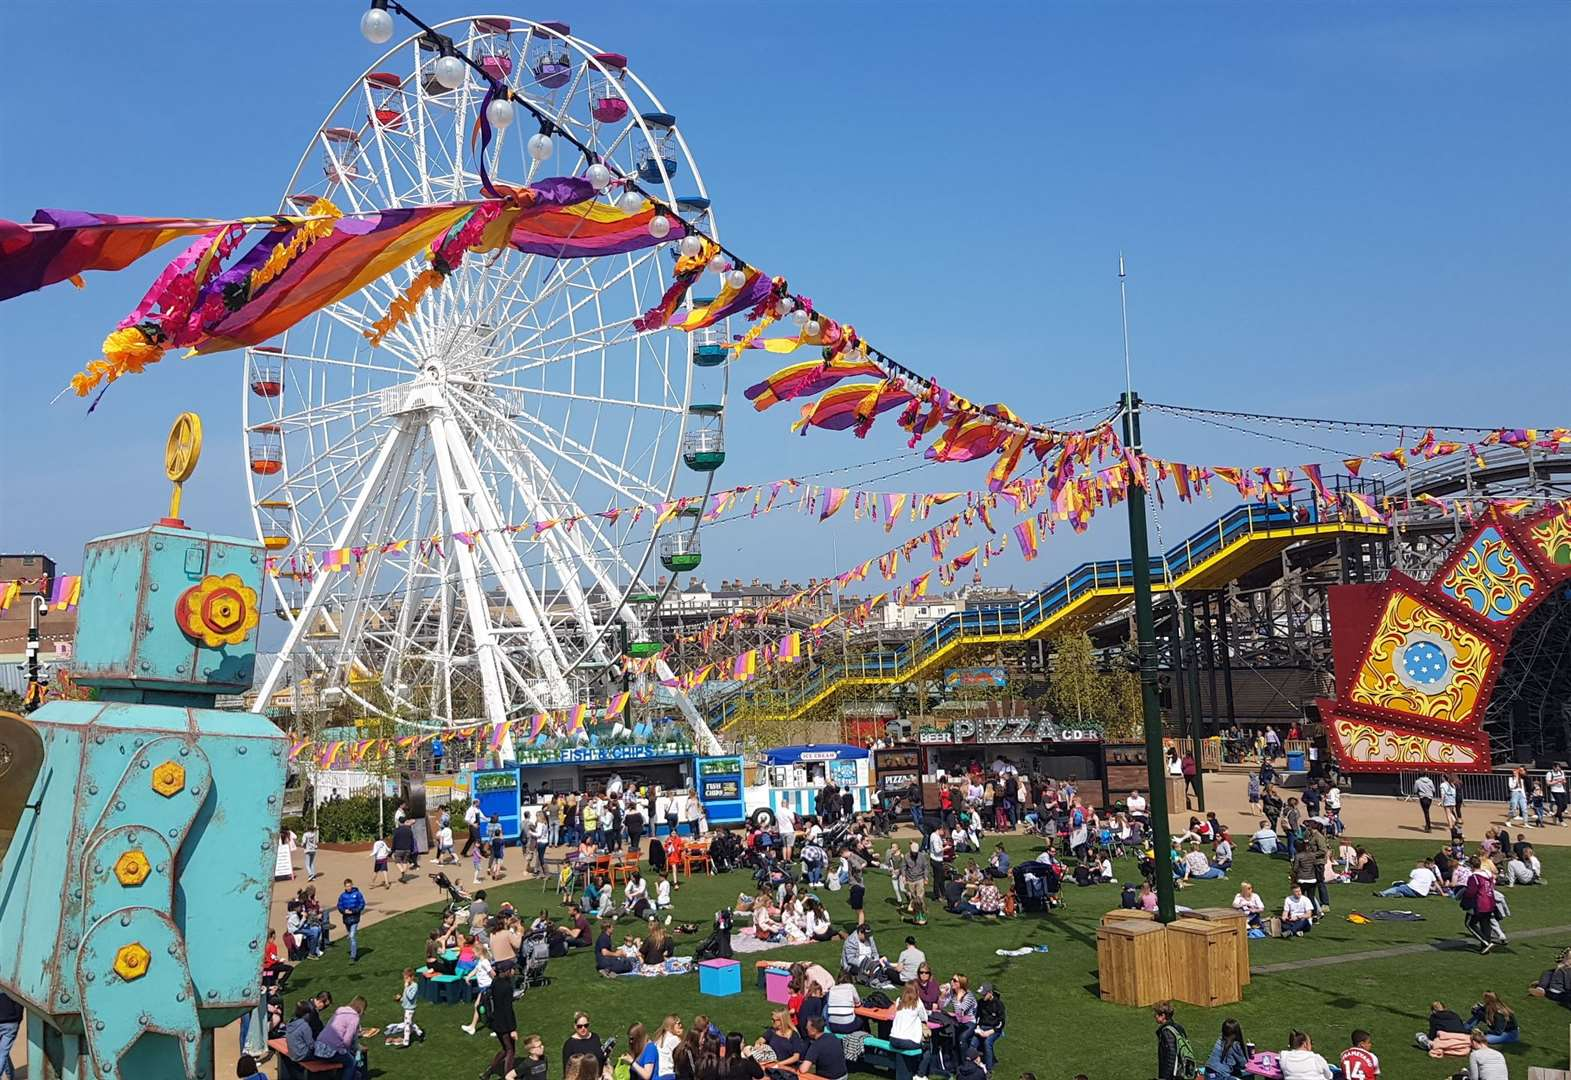 Call for tighter restrictions on Dreamland sale